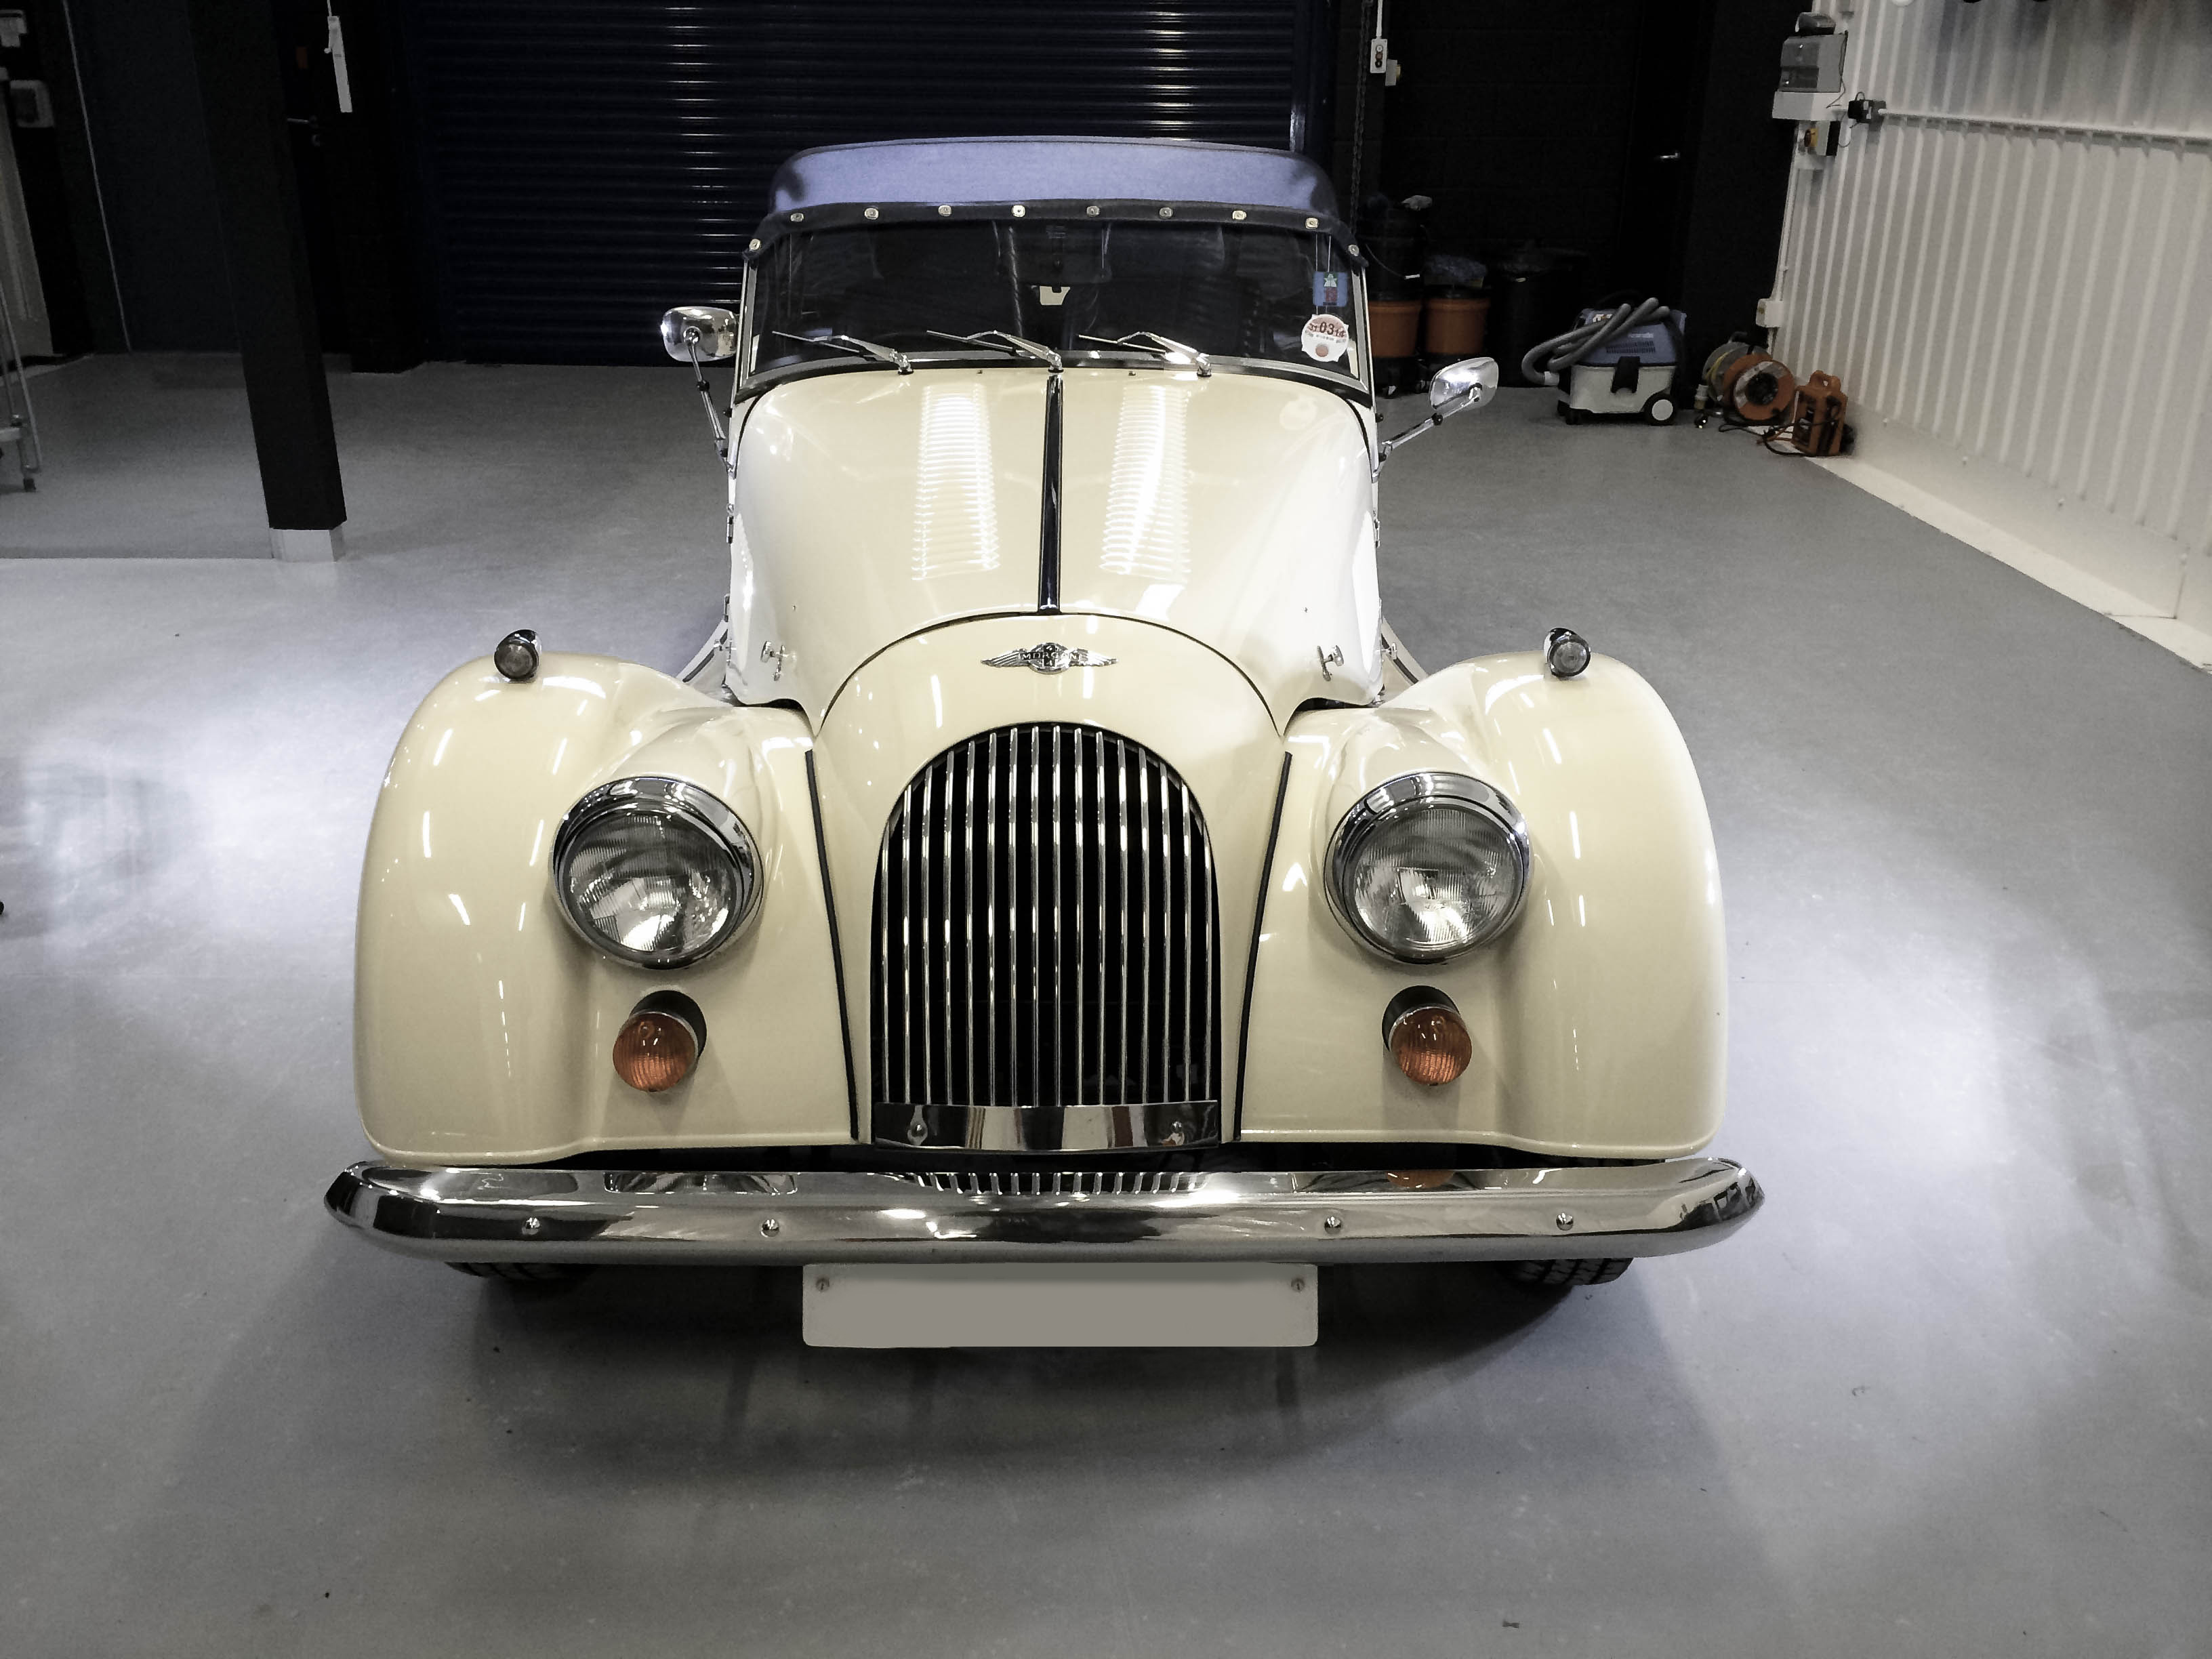 Morgan – Front view